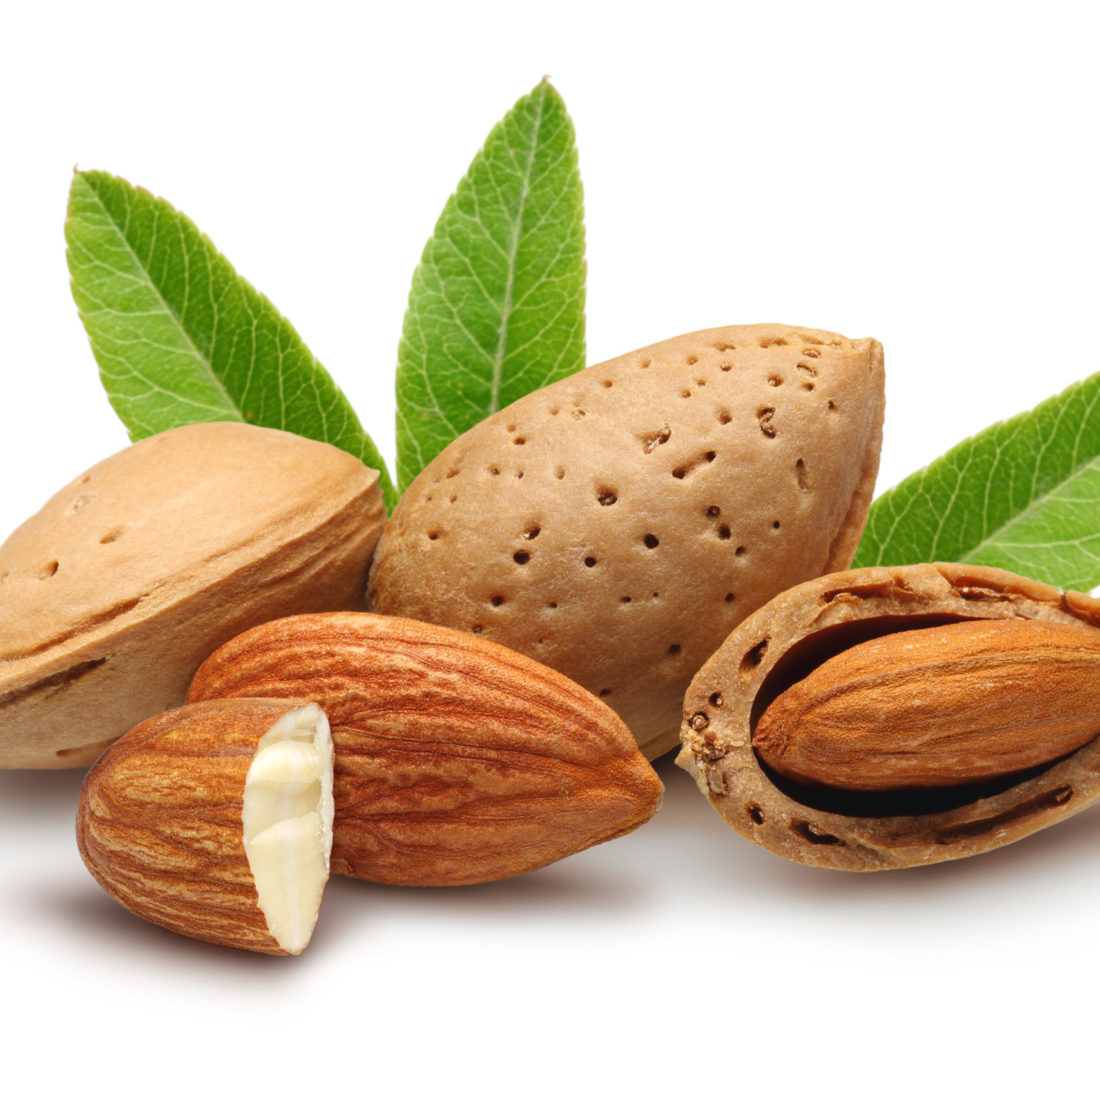 almonds, shelled almonds and leaves